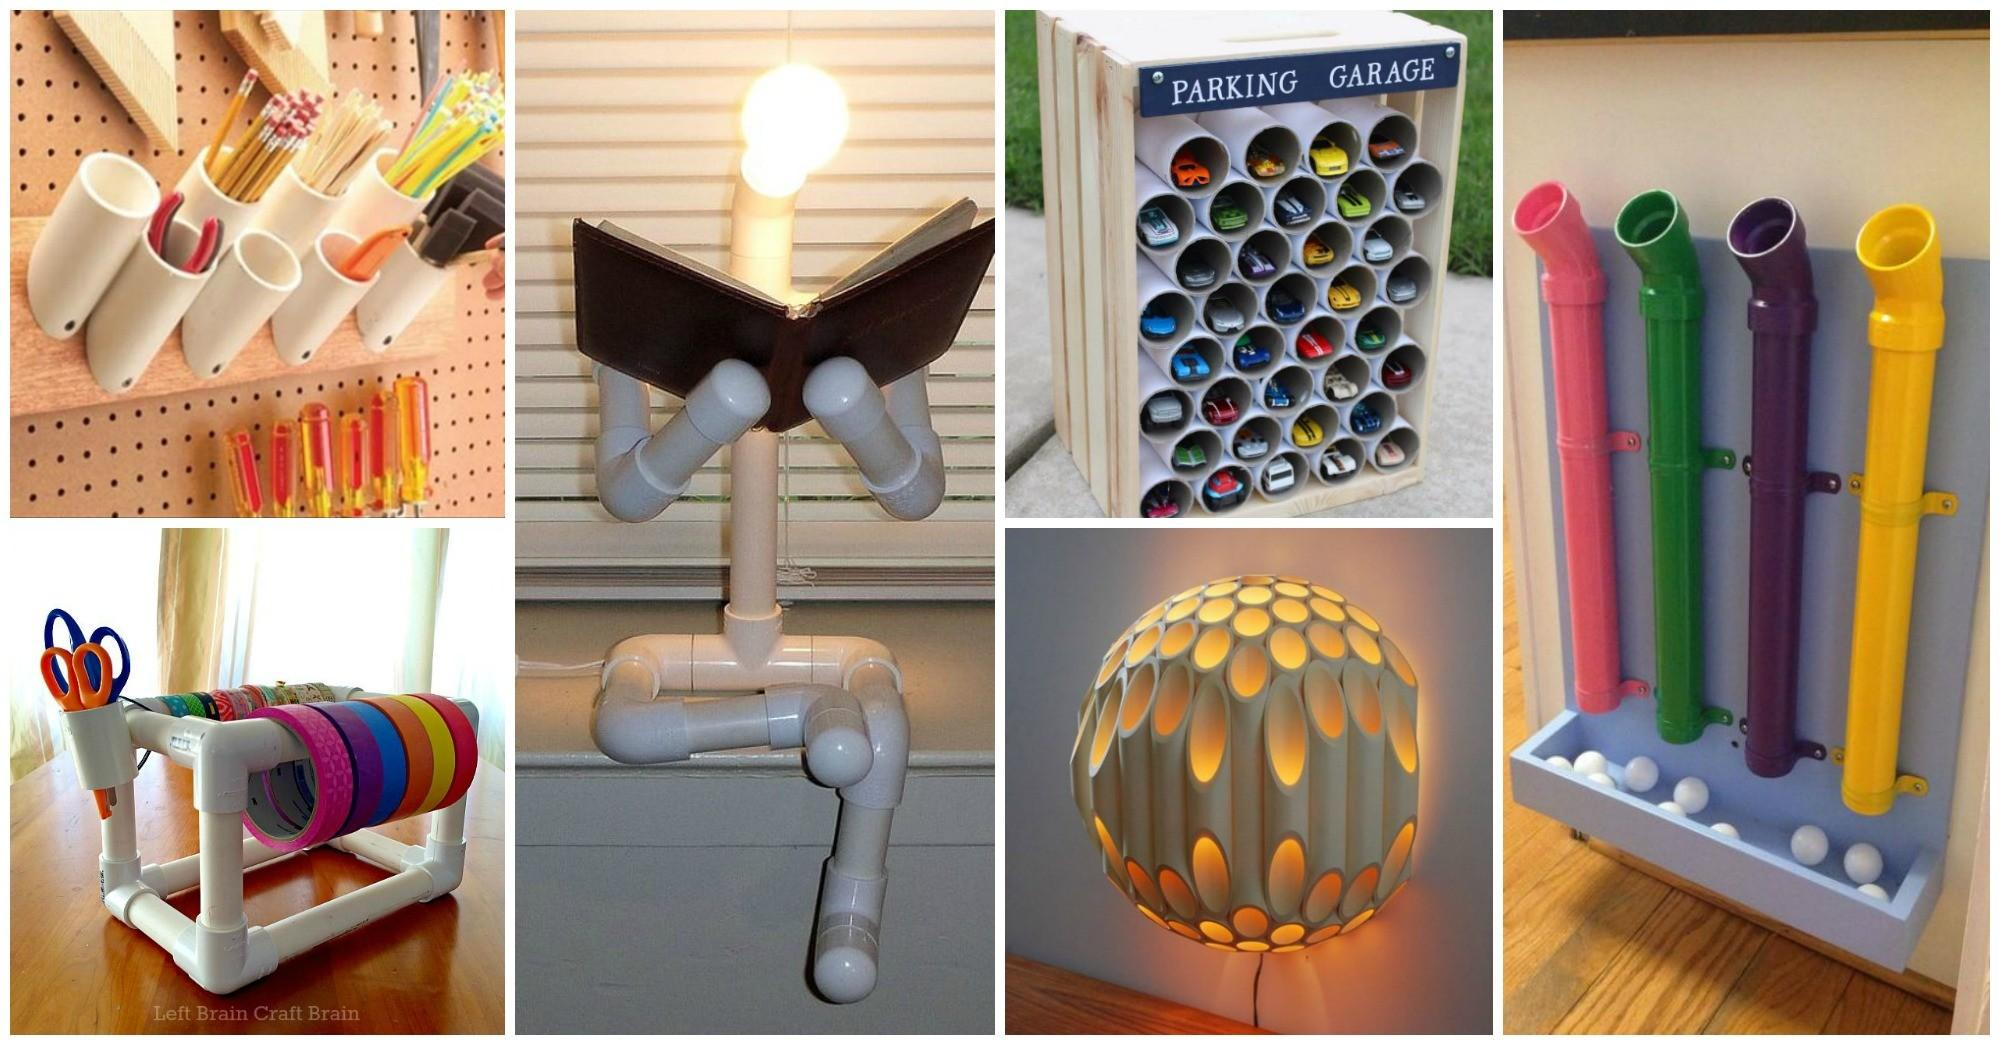 Diy Pvc Pipes Bright Creative Solutions Your Home